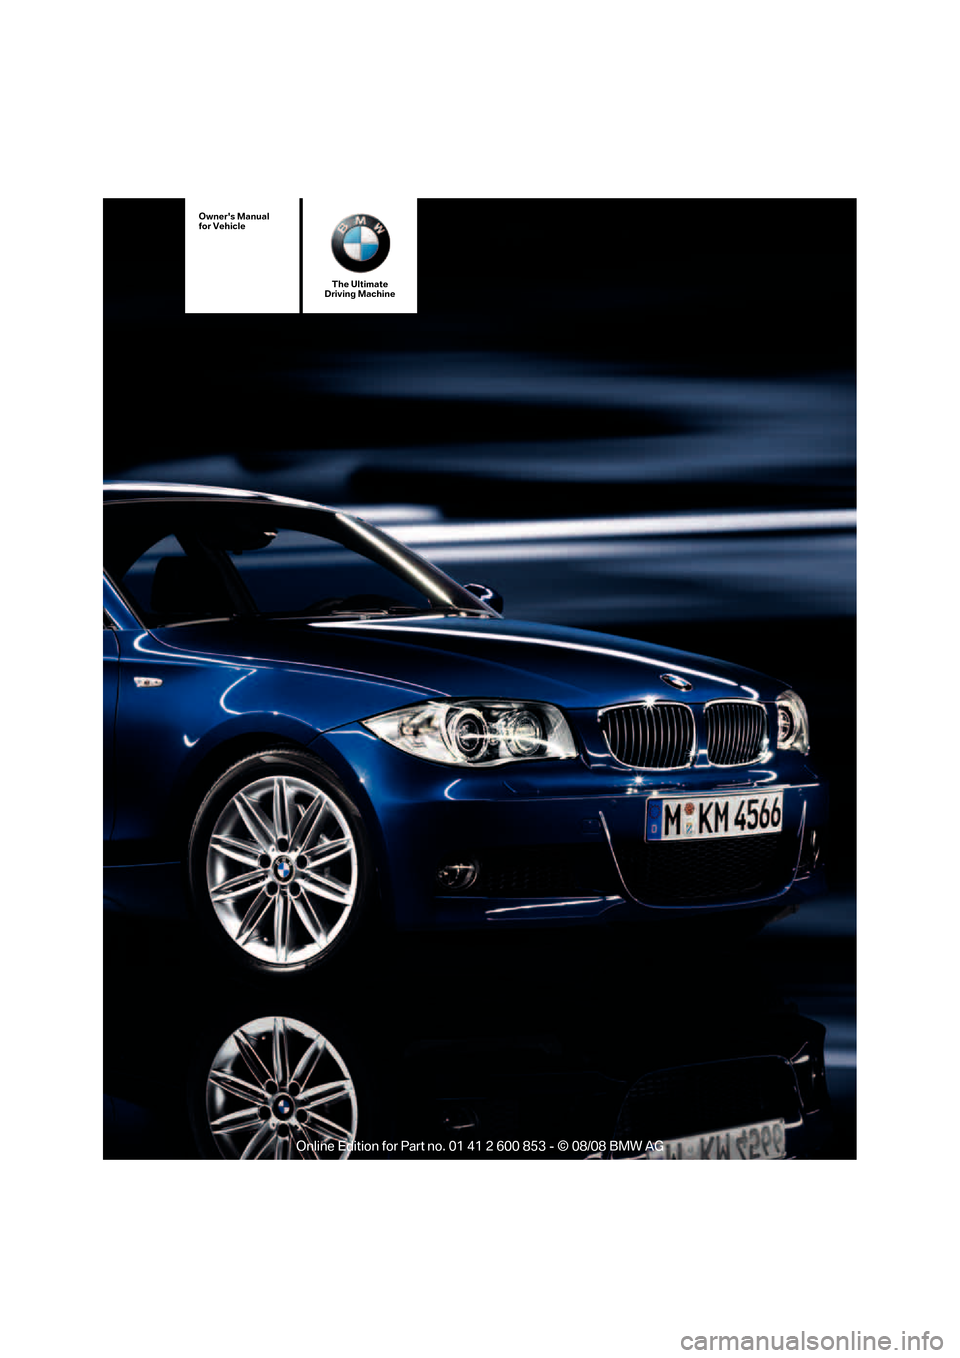 BMW 128I 2009 E81 Owners Manual, Page 1